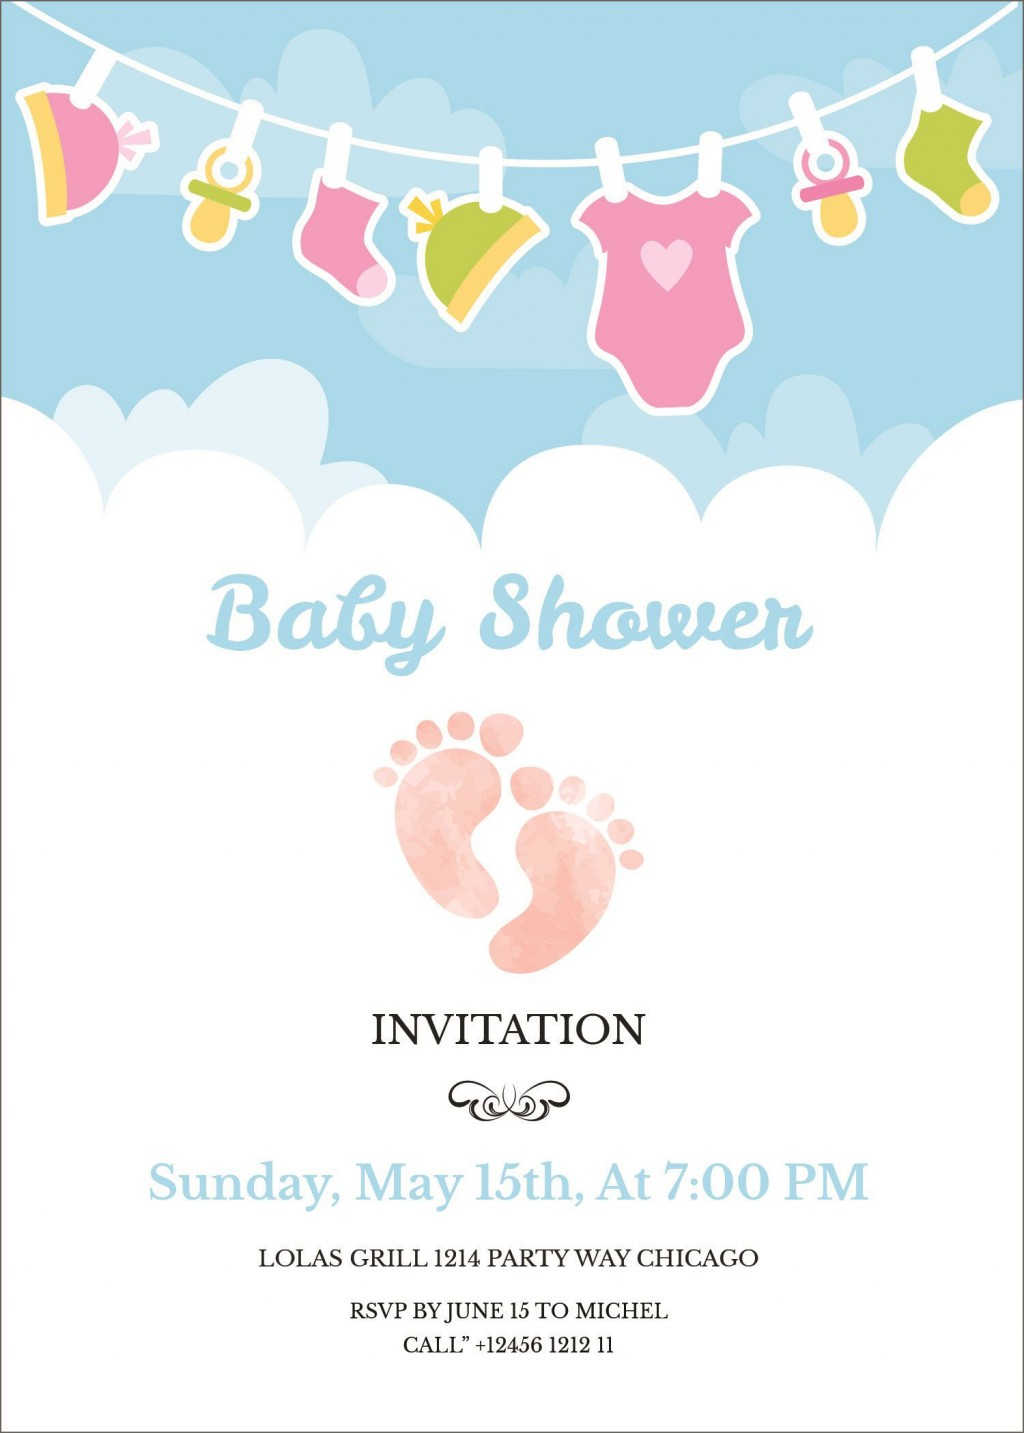 004 Awful Baby Shower Invitation Card Template Free Download Design  IndianLarge